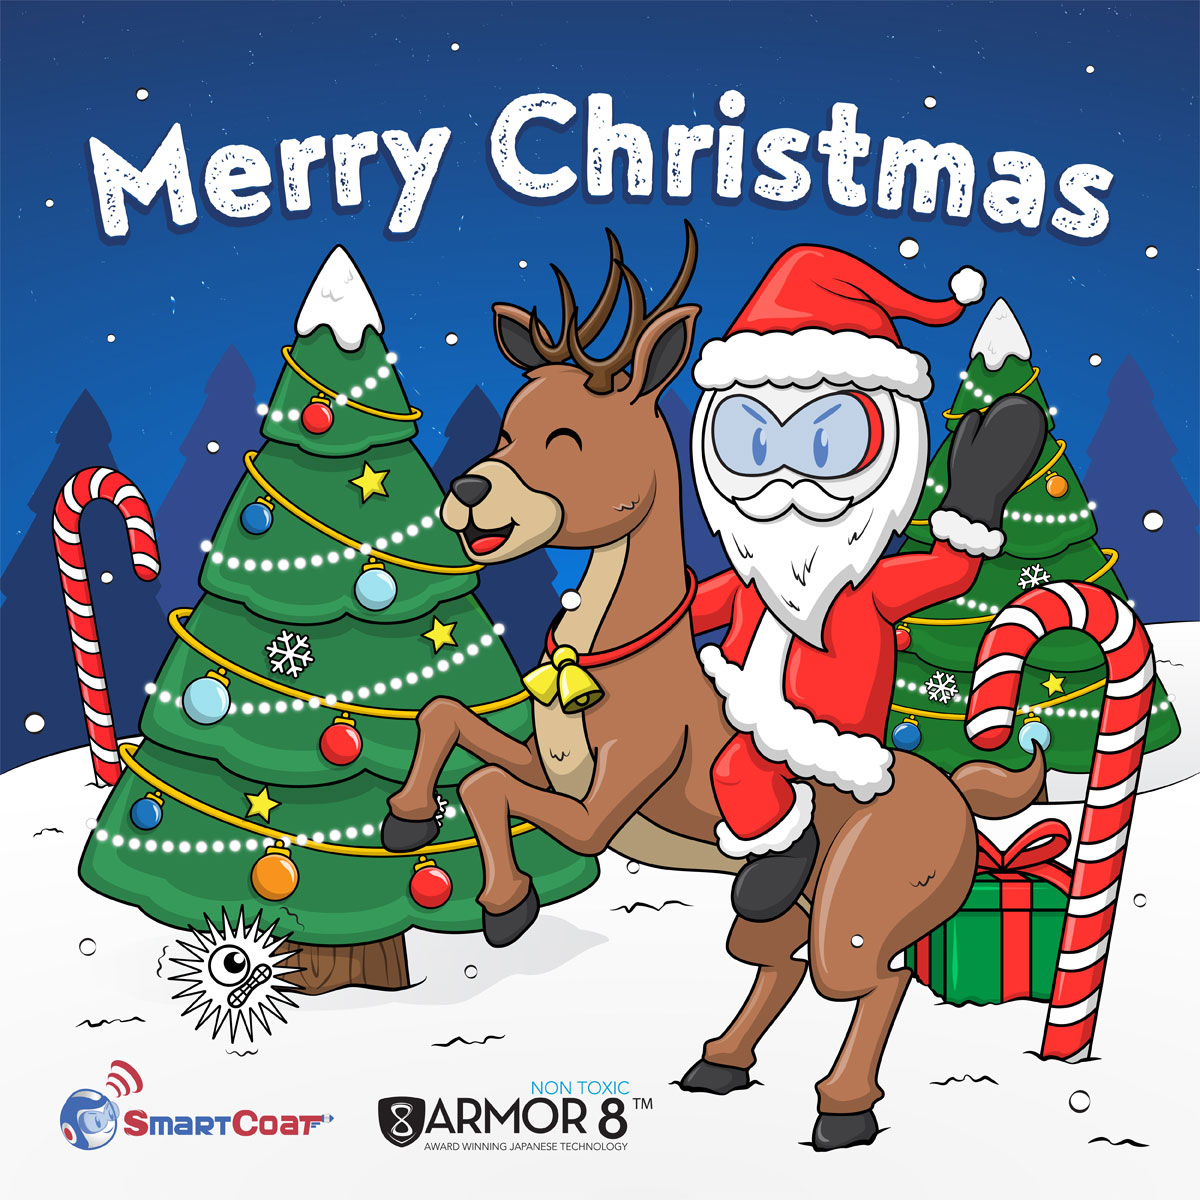 SmartCoat and Armor8 Merry Christmas 2018 Facebook Post Design 04